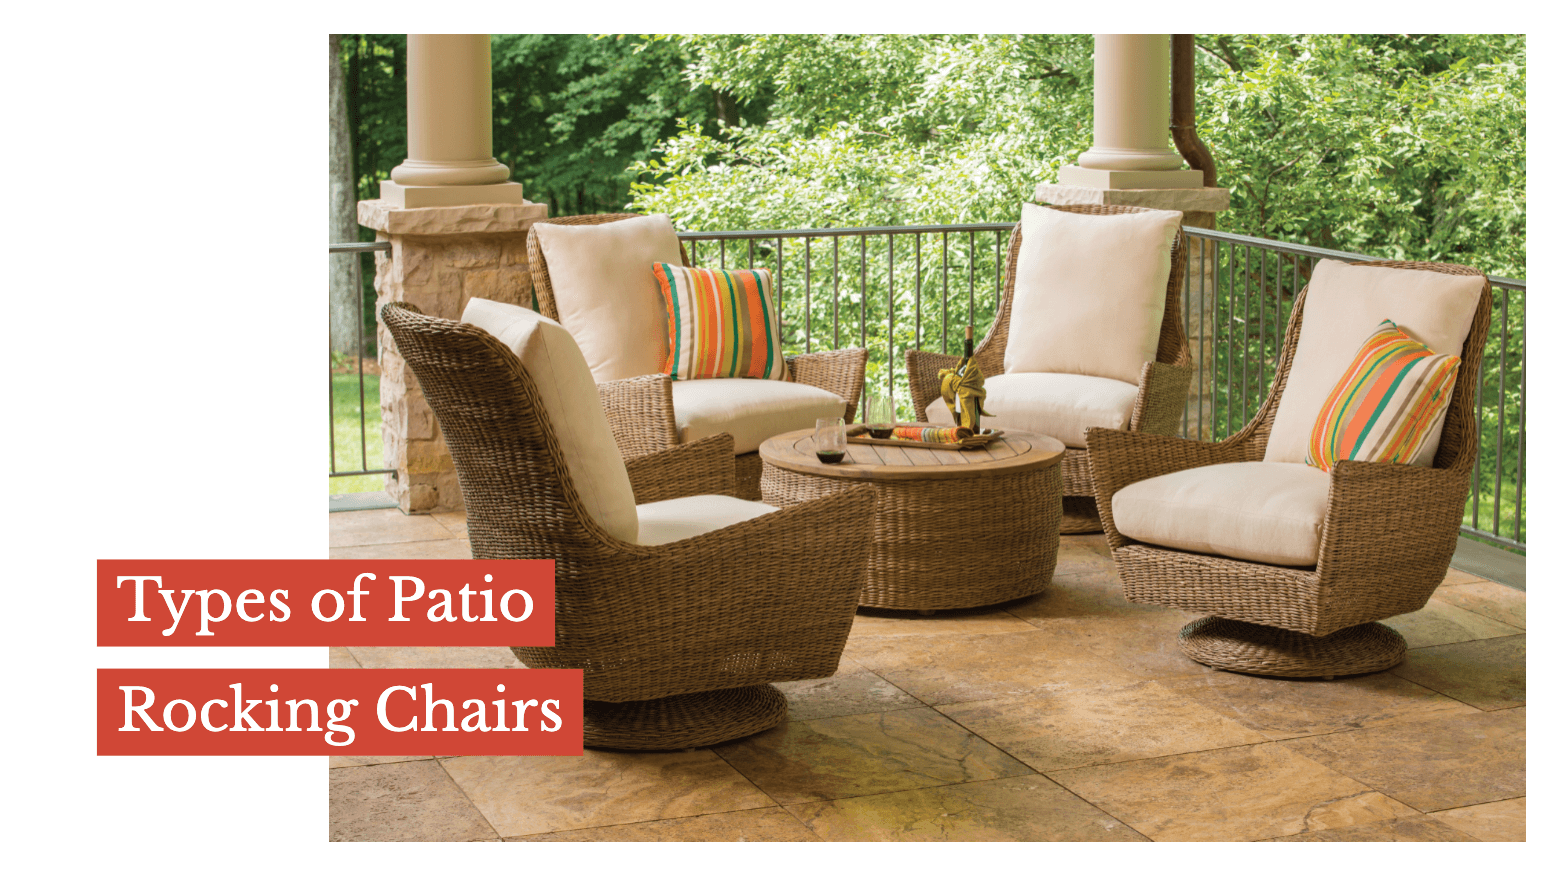 Types of Patio Rocking Chairs